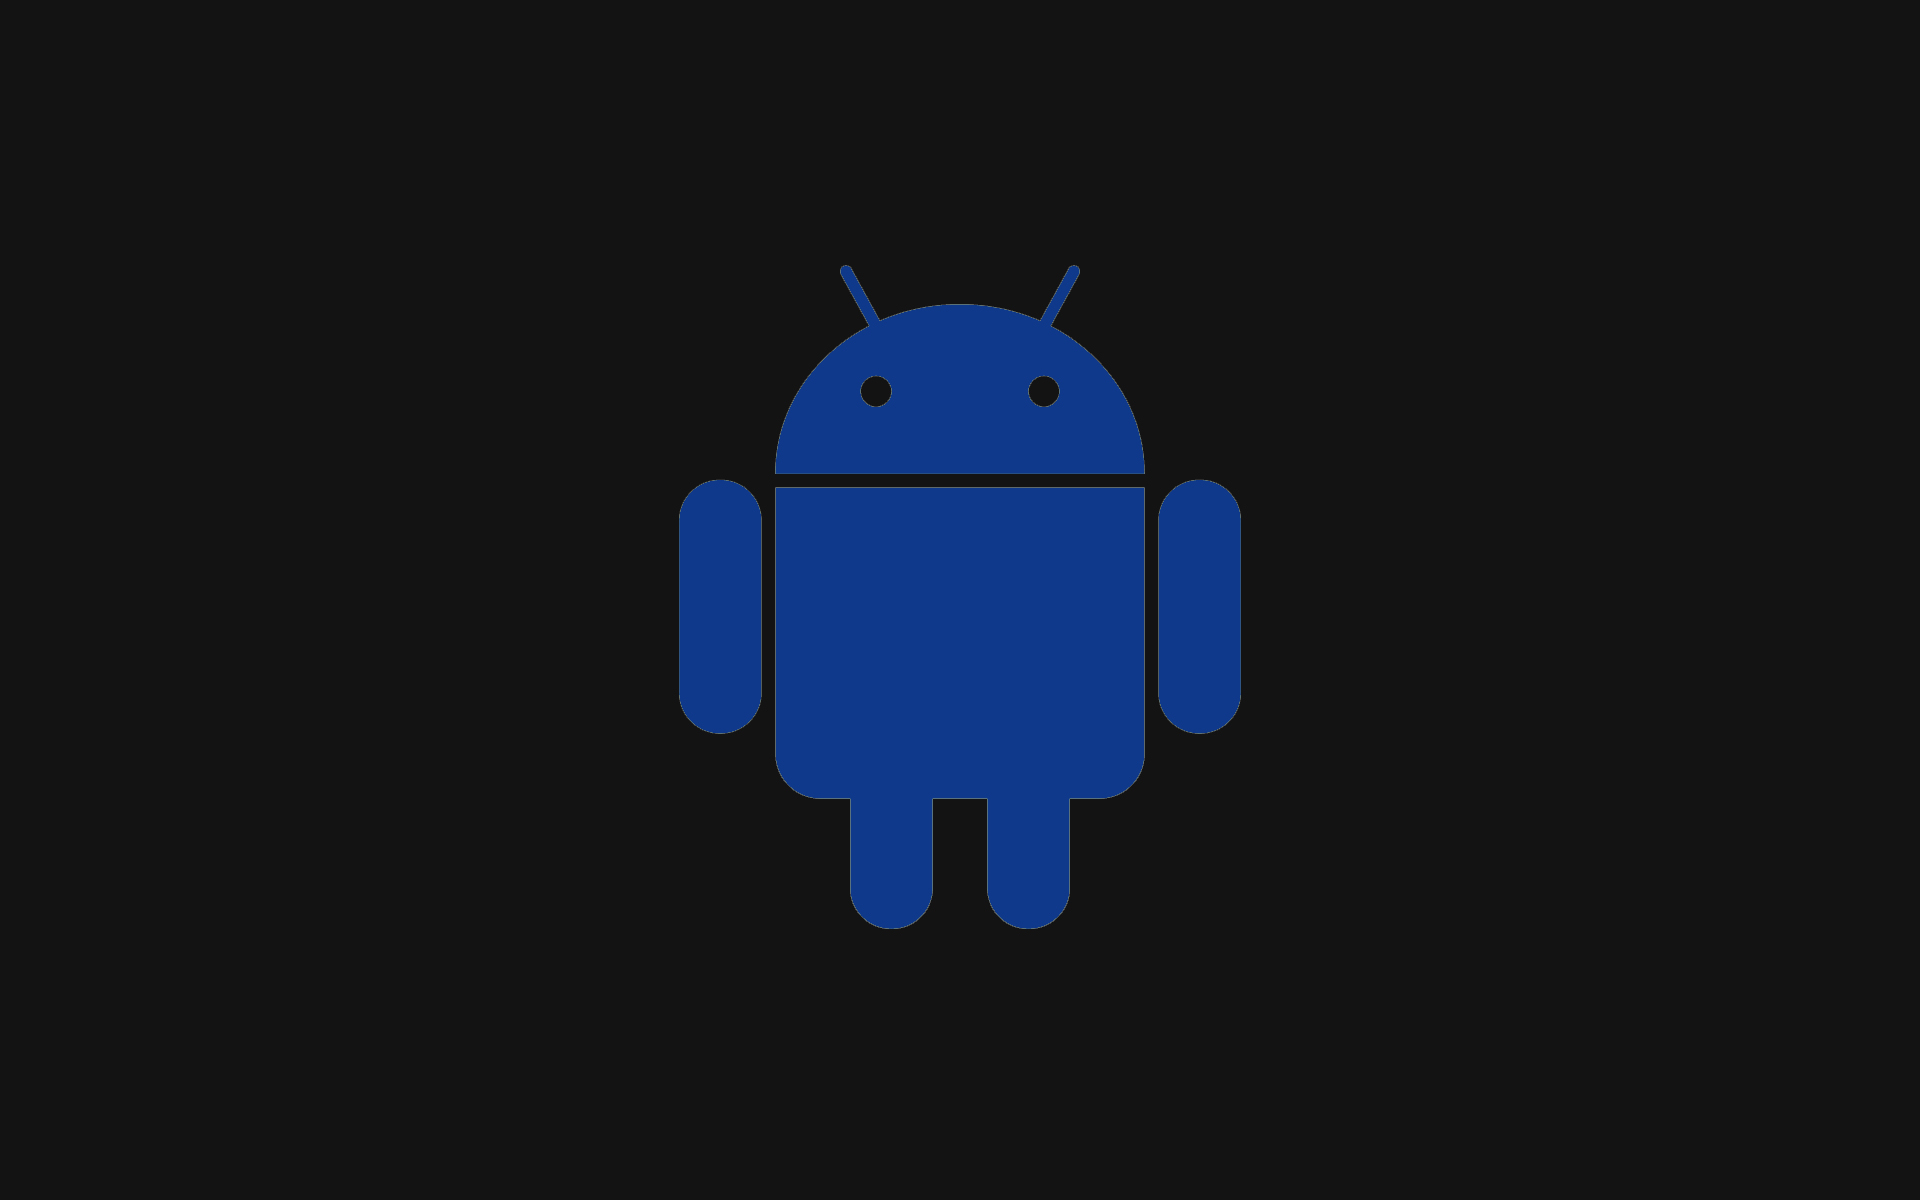 blue android and black background wallpaper de 6581